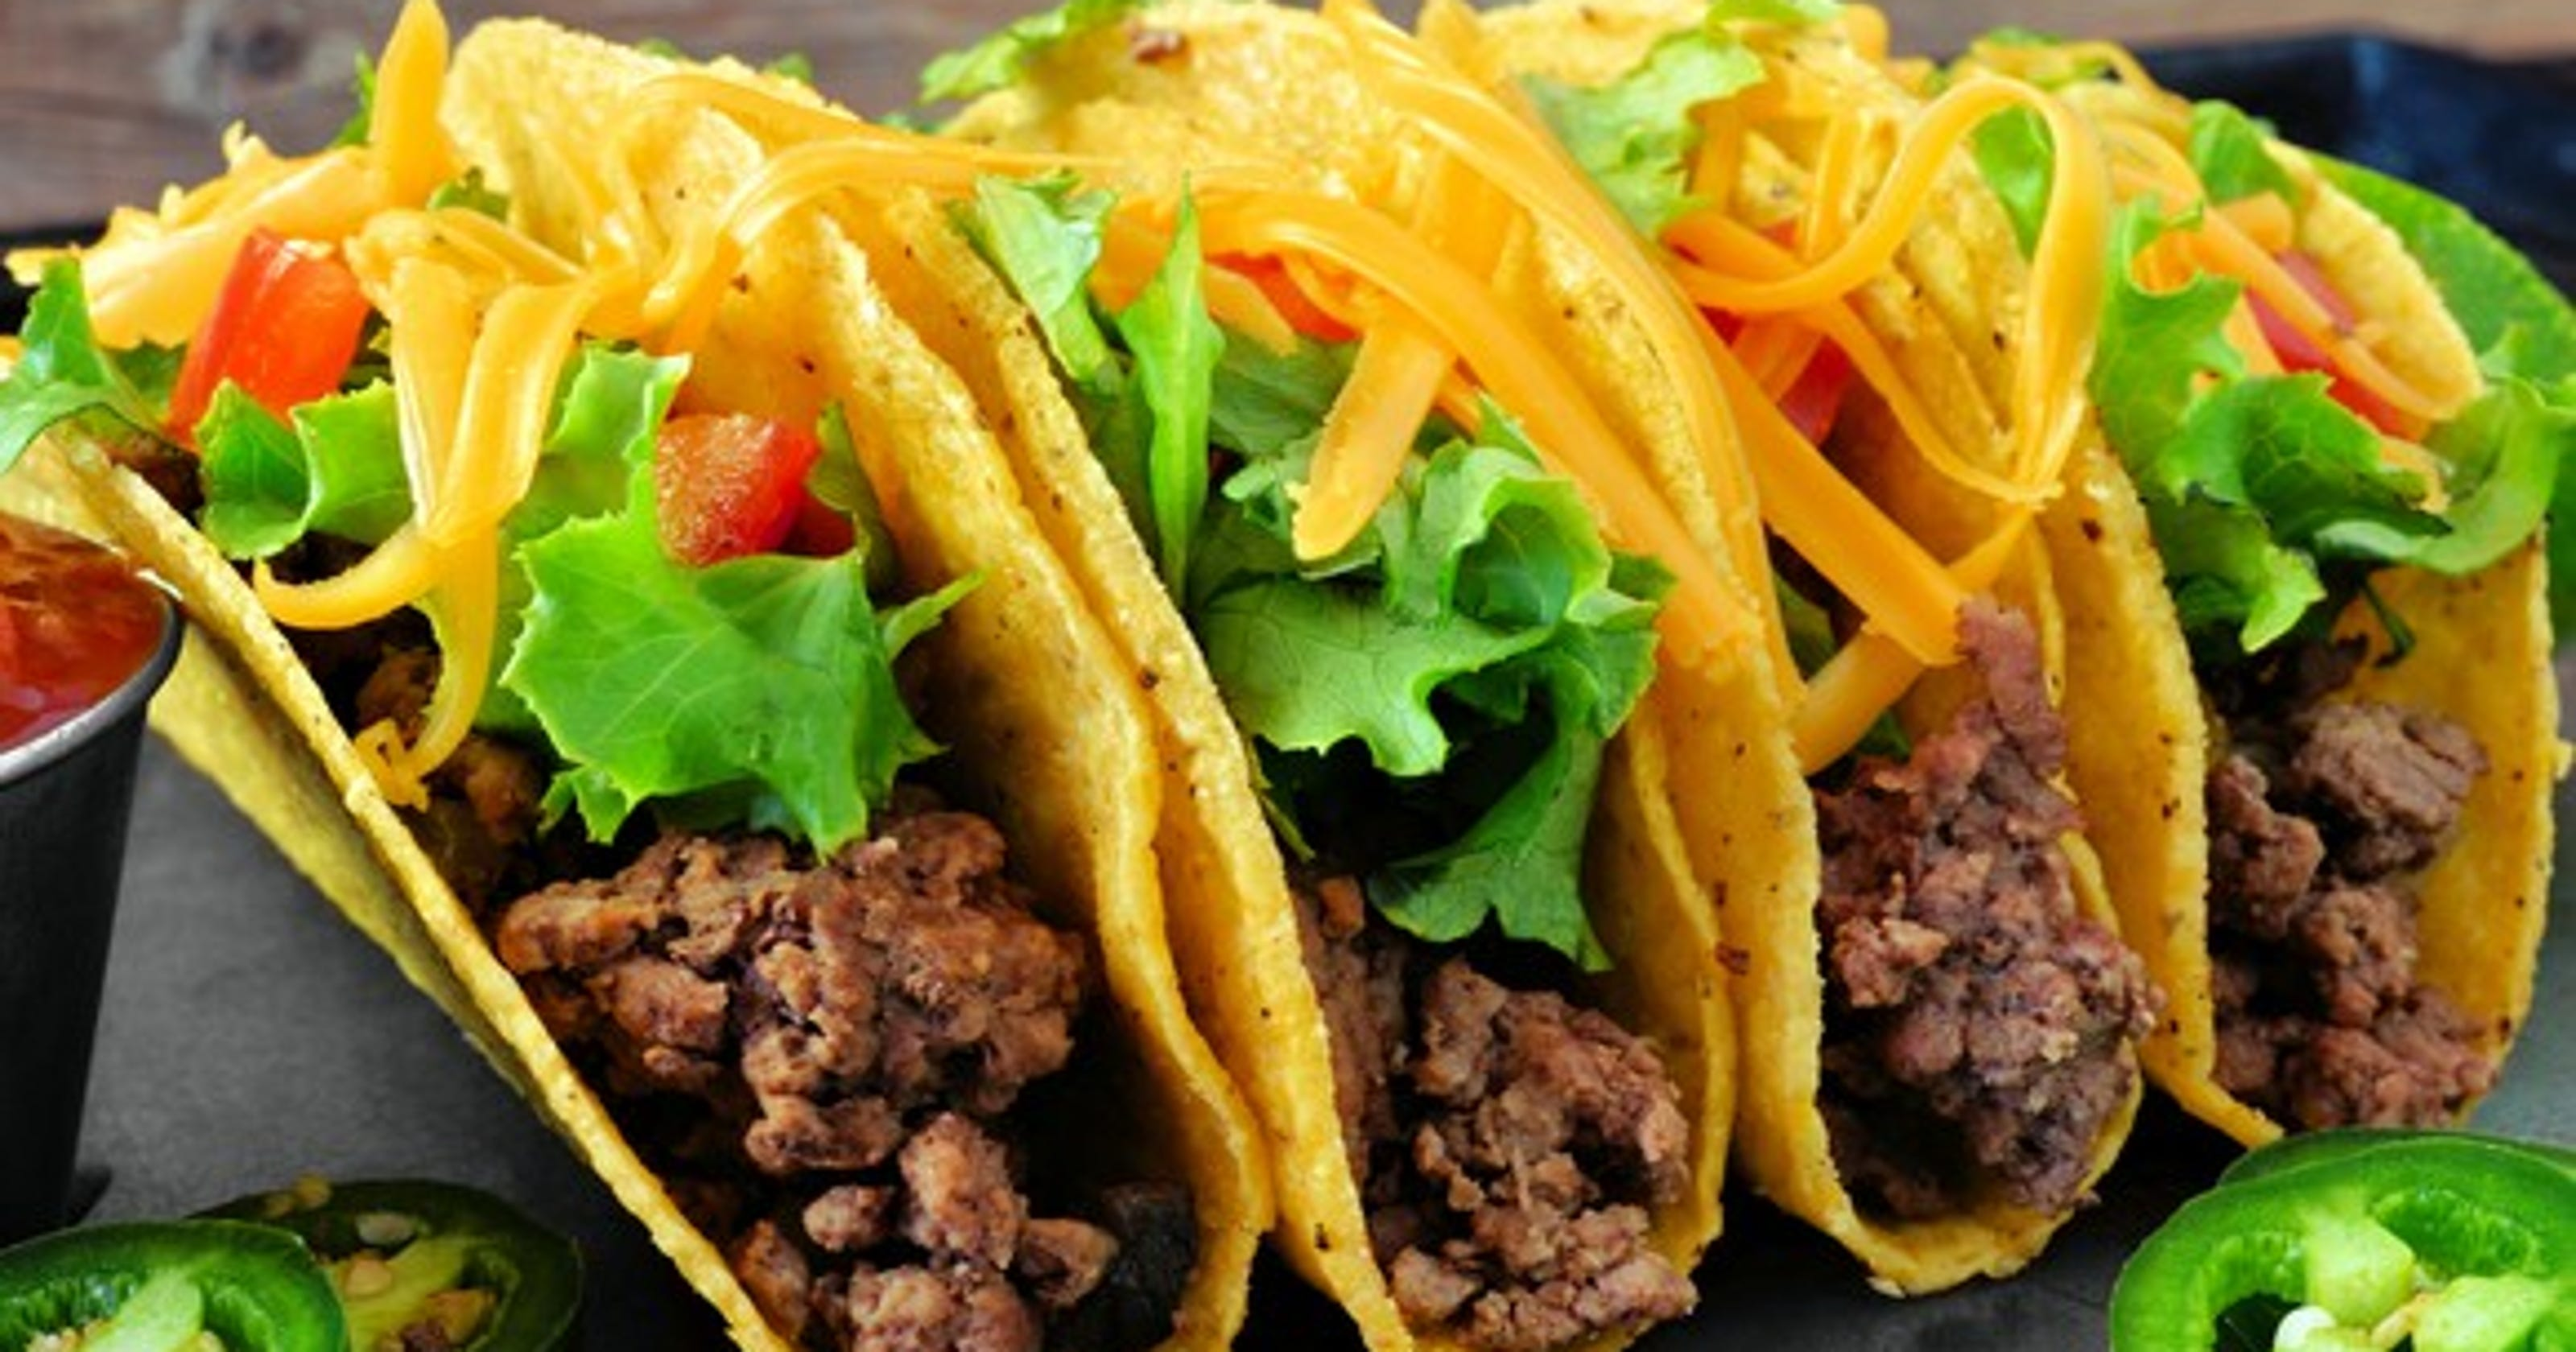 e2ee01d097f National Taco Day: Freebies, $1 tacos and more Taco Thursday deals